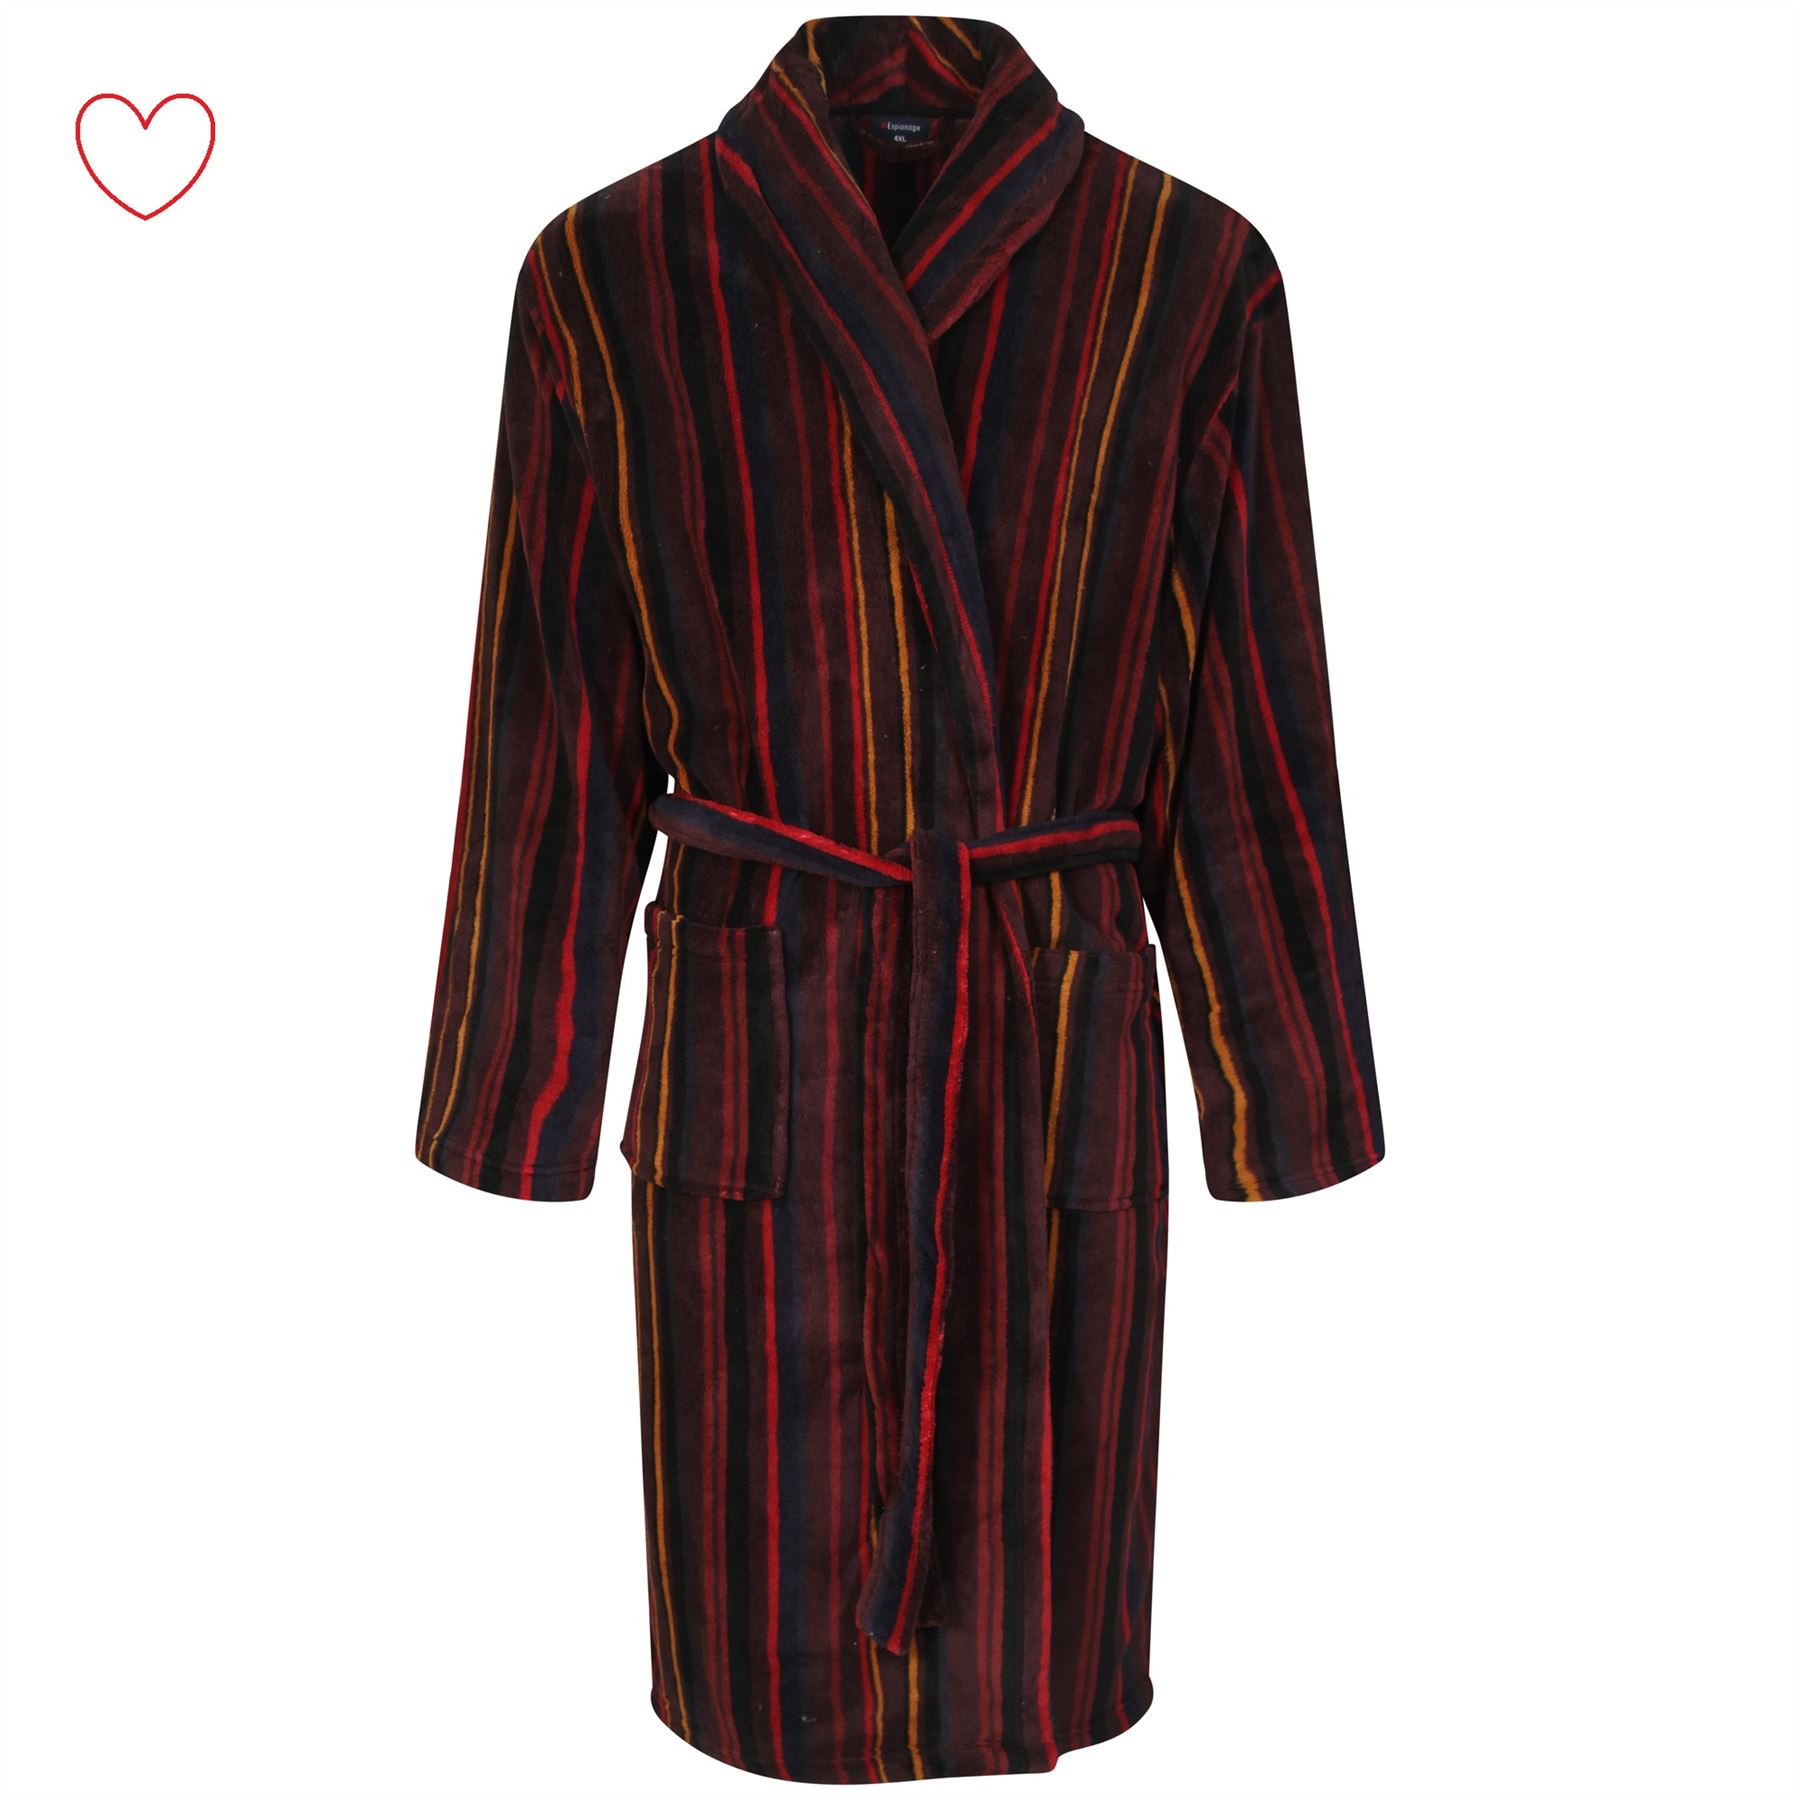 Enjoy free shipping and easy returns every day at Kohl's. Find great deals on Big & Tall Pajamas & Robes at Kohl's today!